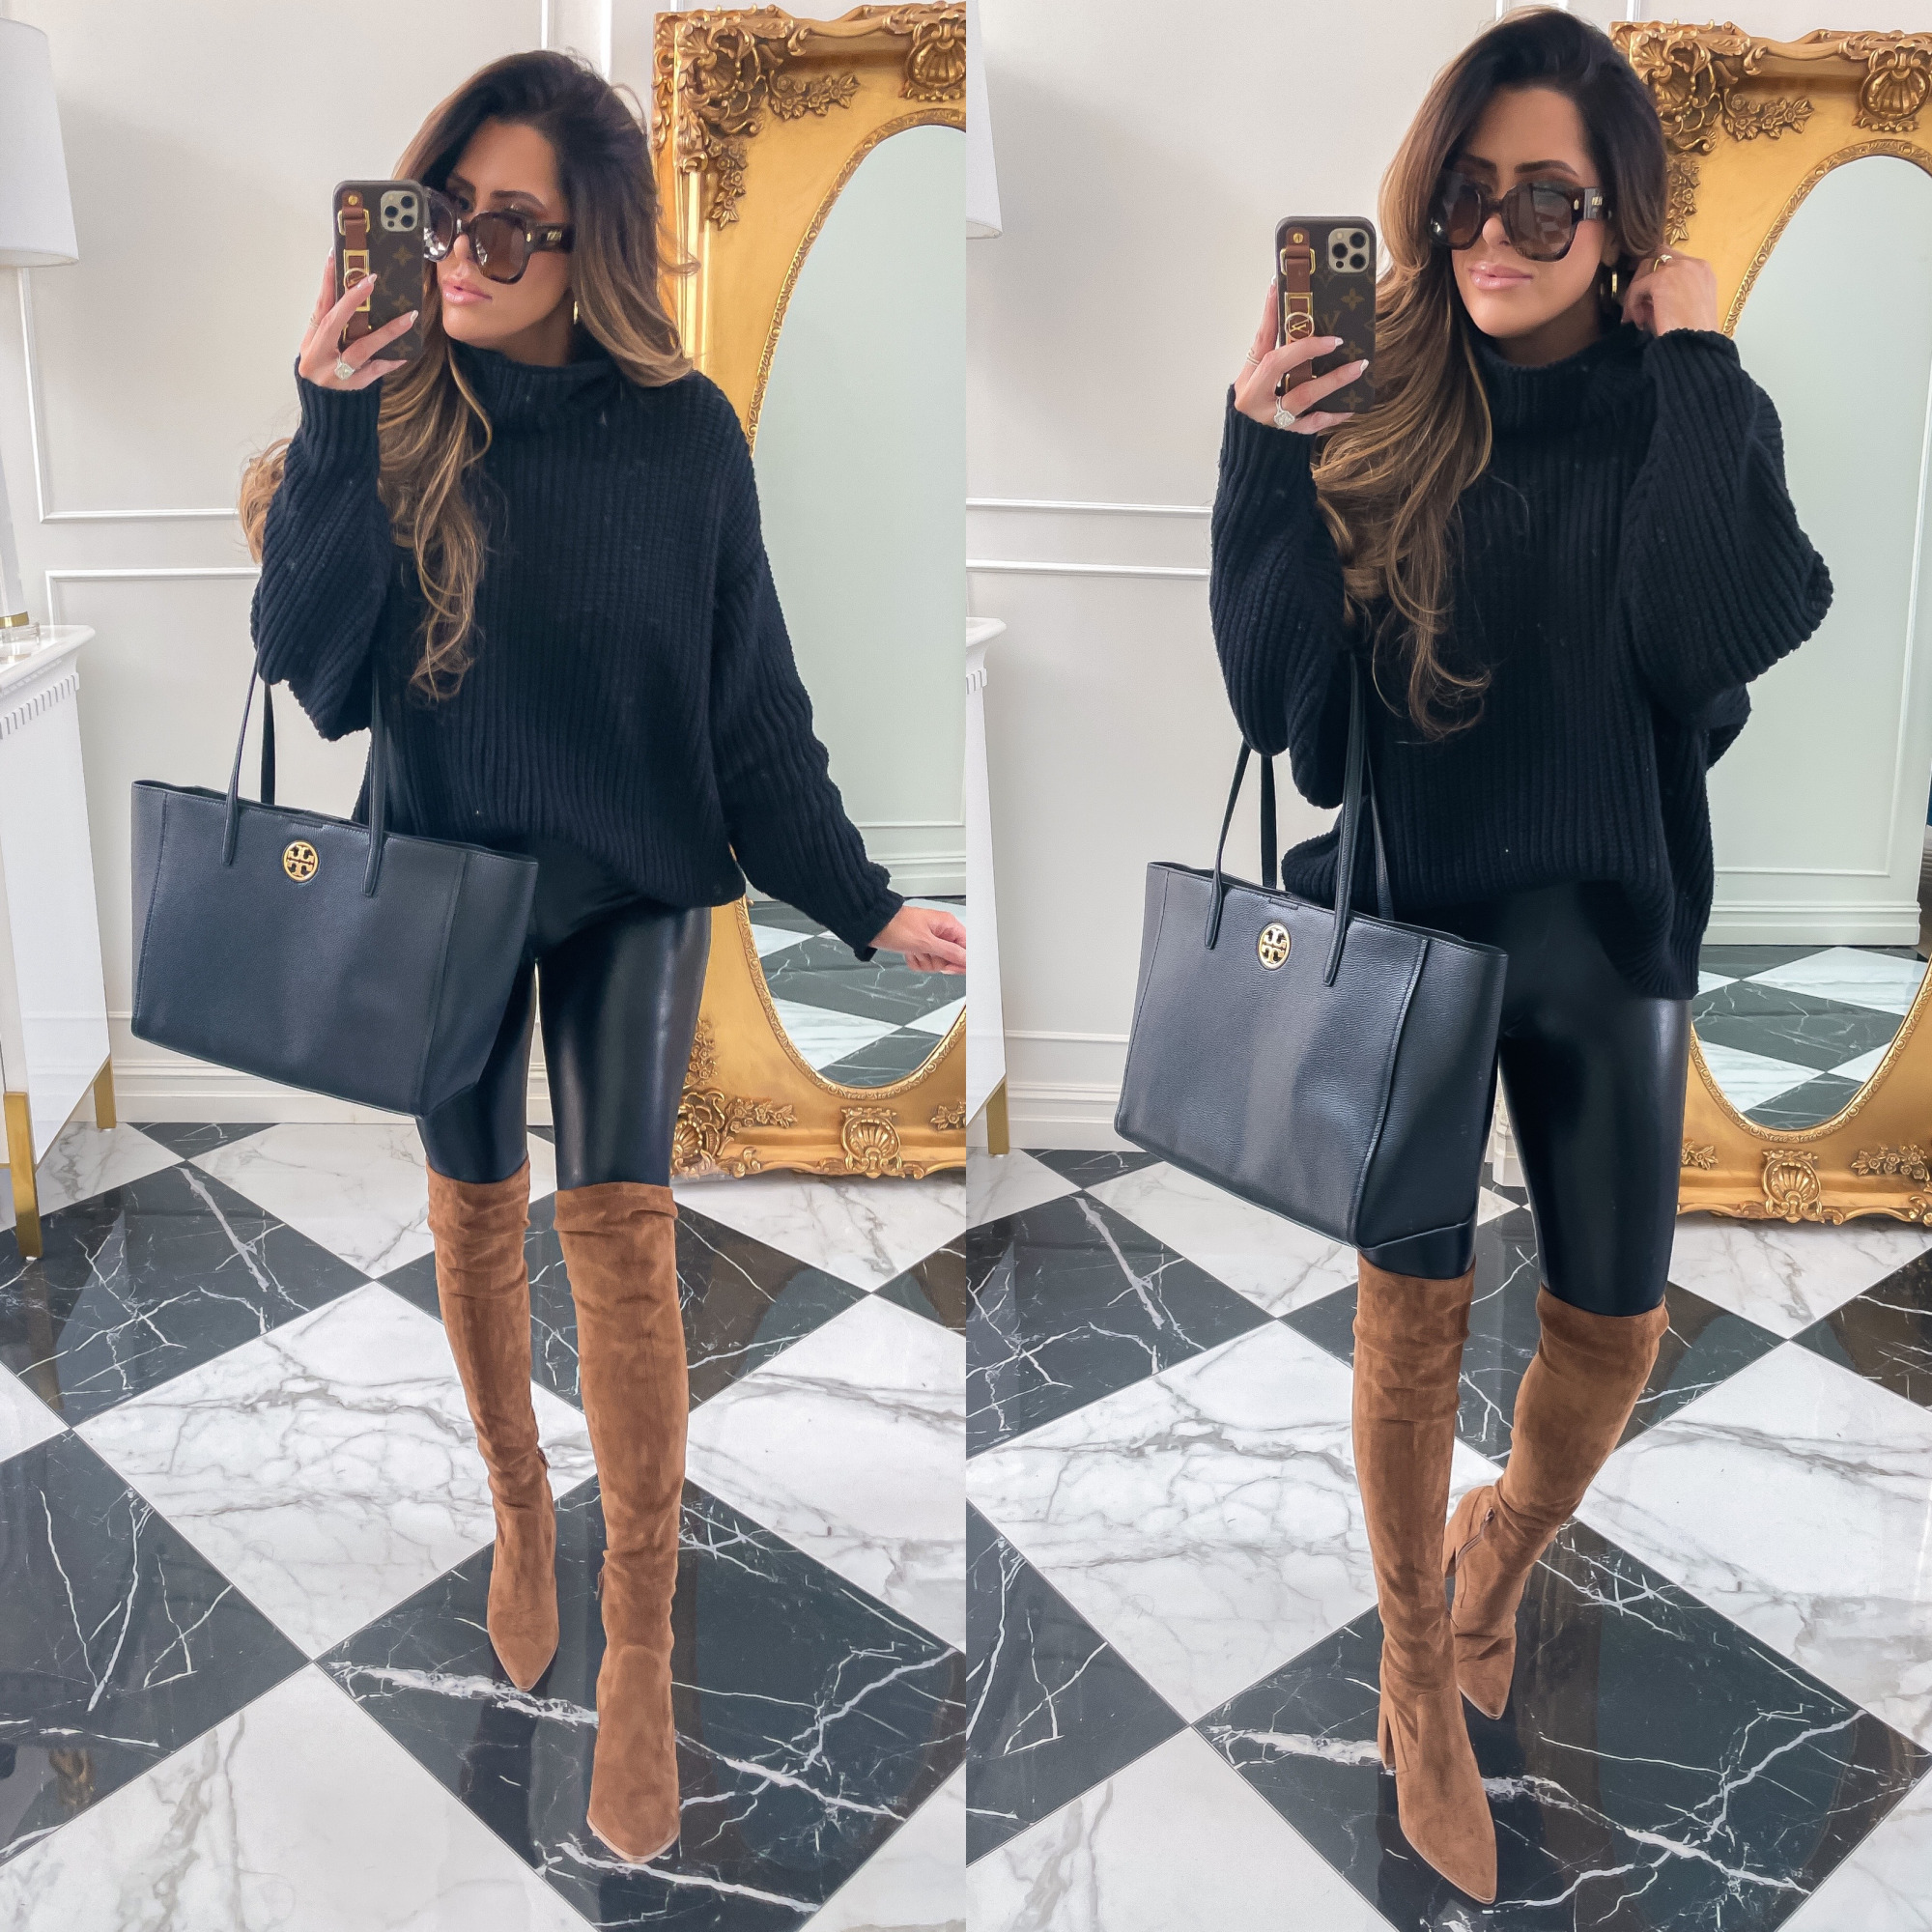 NSALE 2021 picks best of sale emily ann gemma | Nordstrom Anniversary Sale by popular US fashion blog, The Sweetest Thing: image of Emily Gemma wearing a black knit mock neck sweater, black faux leather leggings, brown suede over the knee boots, and holding a black Tory Burch tote bag.